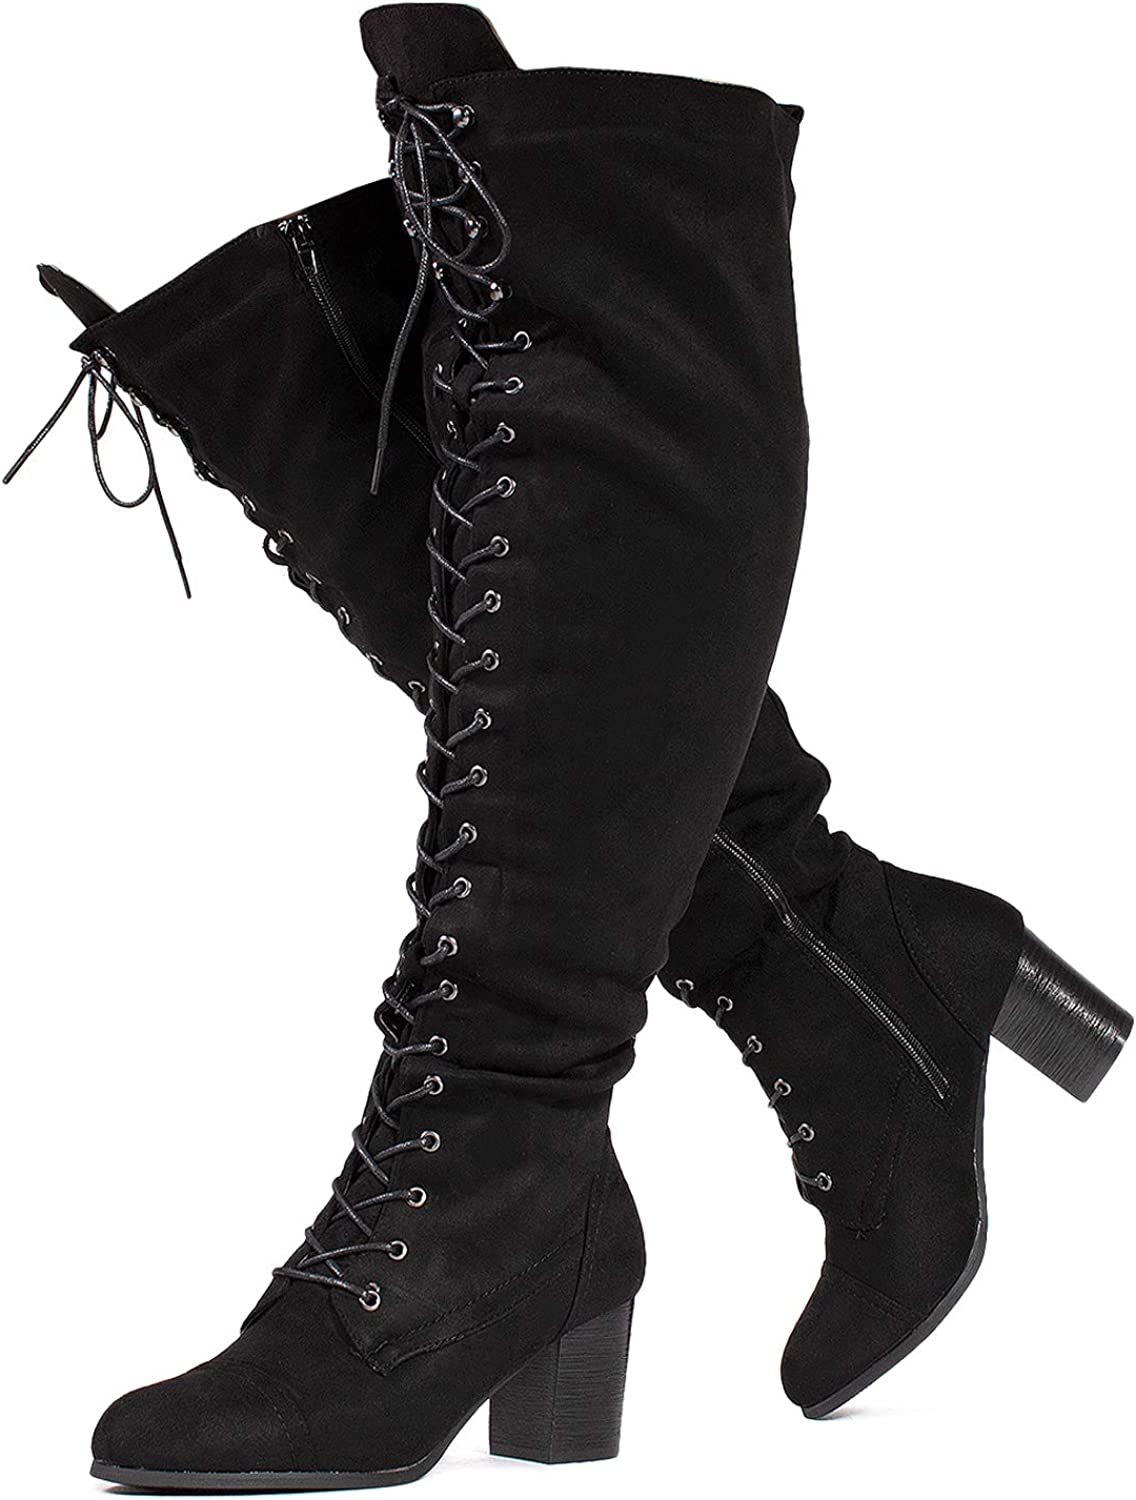 RF ROOM OF FASHION Women's Wide Calf Block Heel Lace Up Over The Knee Riding Boots